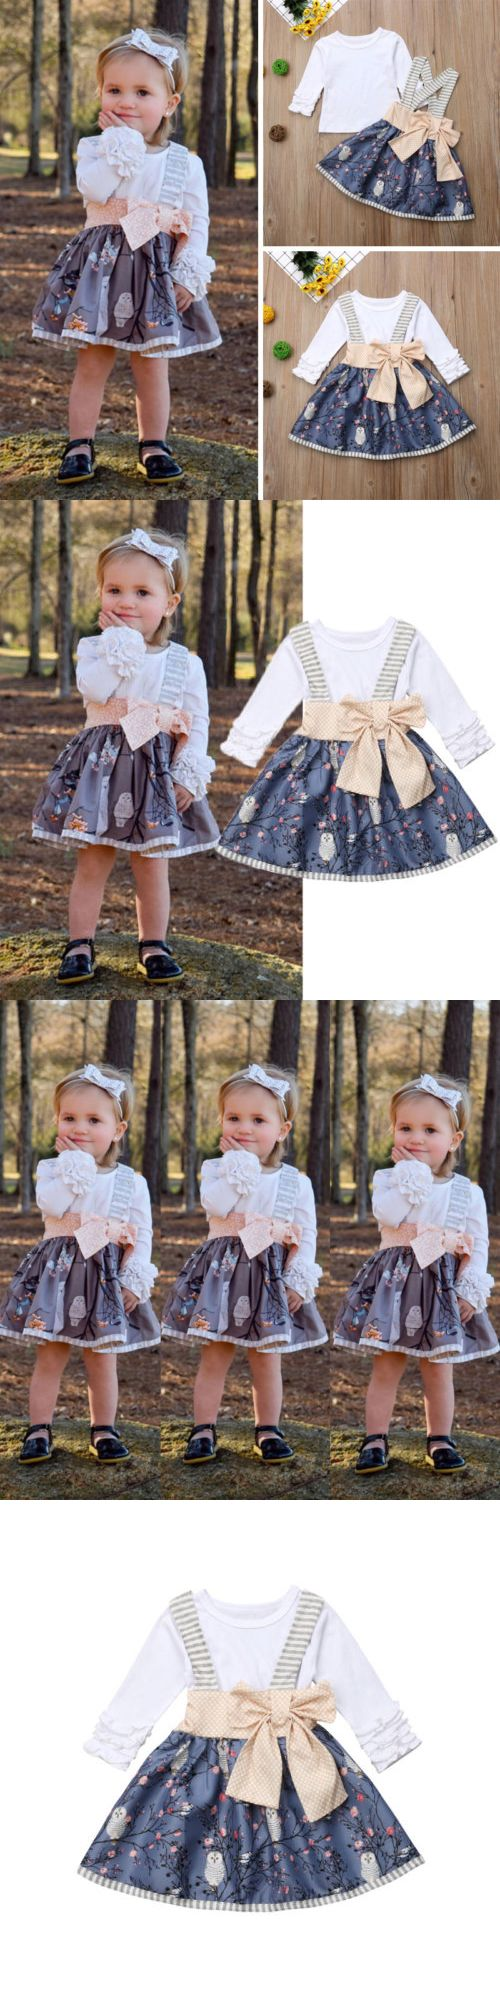 5382ed310f8 Skirts 147214  Cute Newborn Kids Baby Girls Top T-Shirt Suspender Skirt  Dress Outfit Clothes Us -  BUY IT NOW ONLY   11.99 on  eBay  skirts  newborn   girls ...